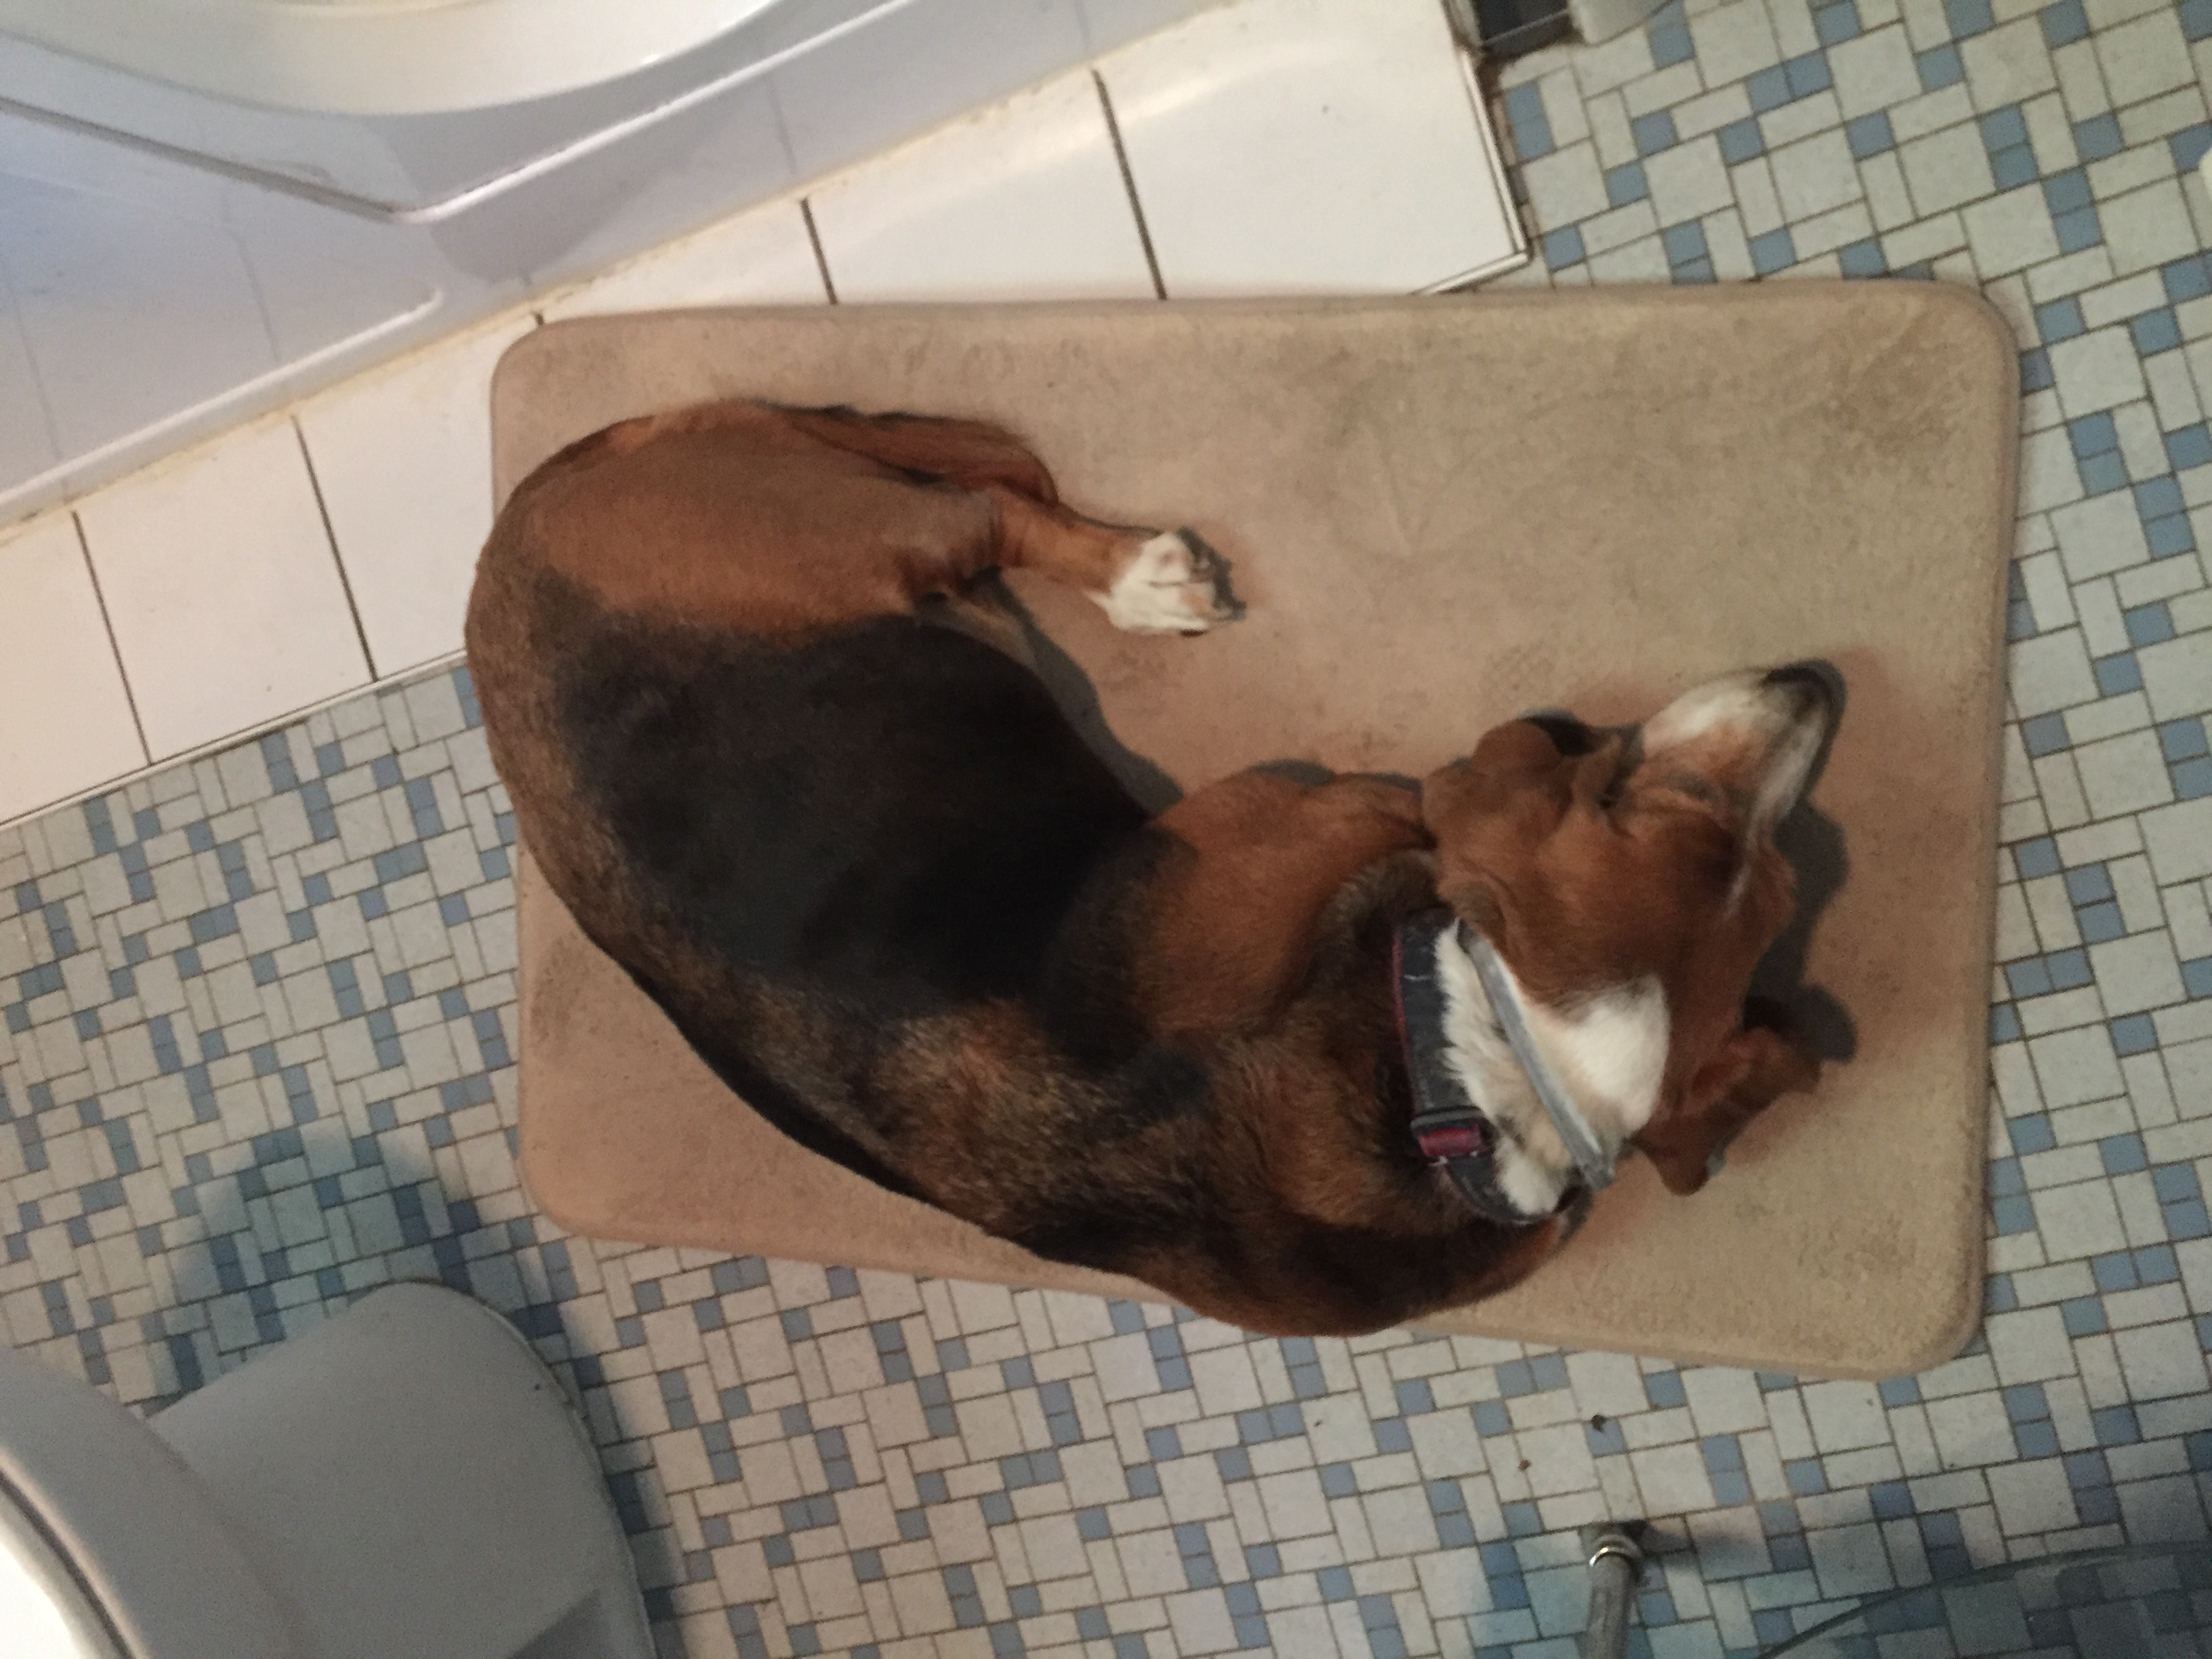 Cletus occupying the bathmat